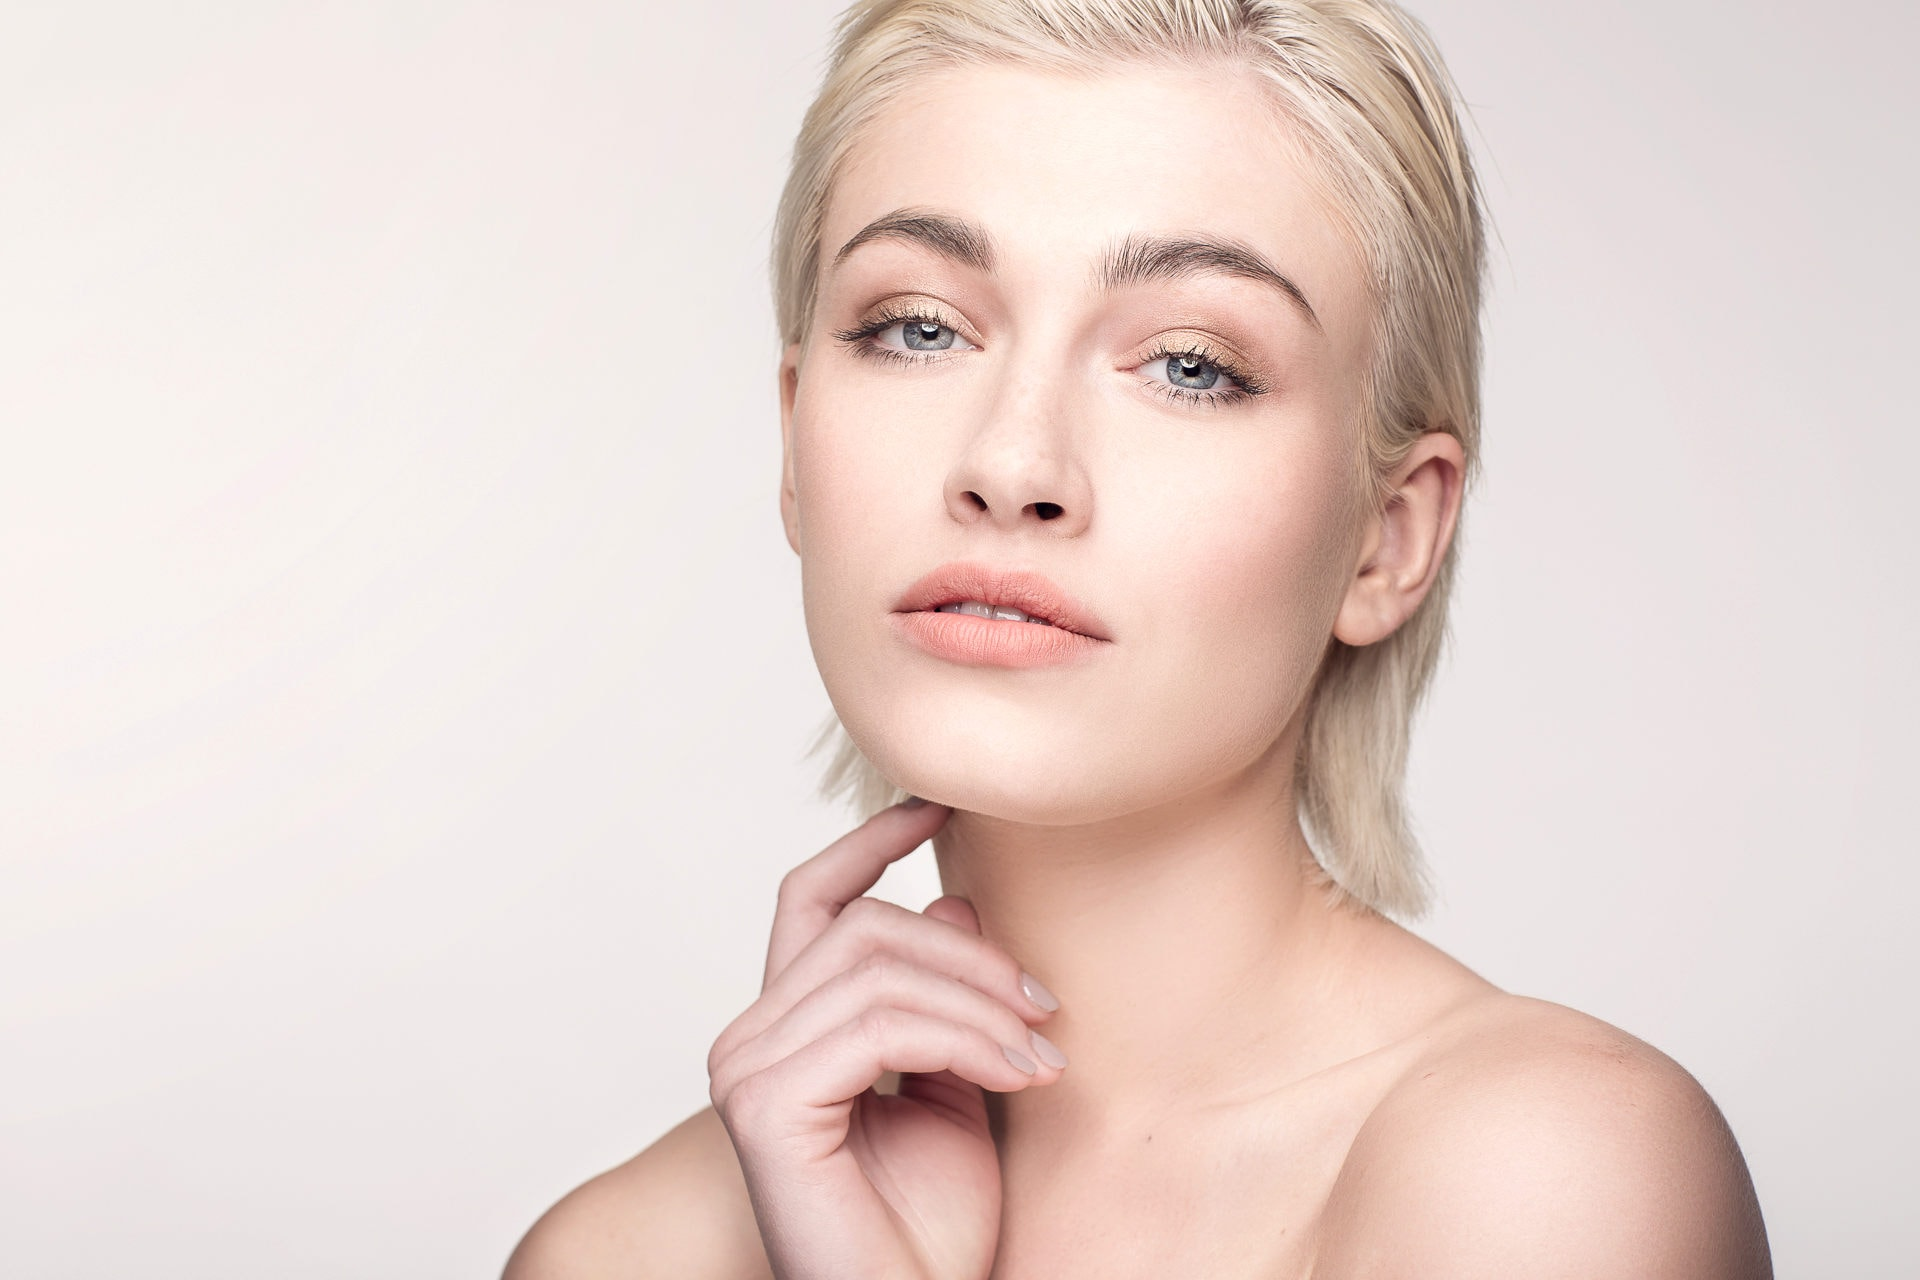 Beauty photography. Skin care photography.